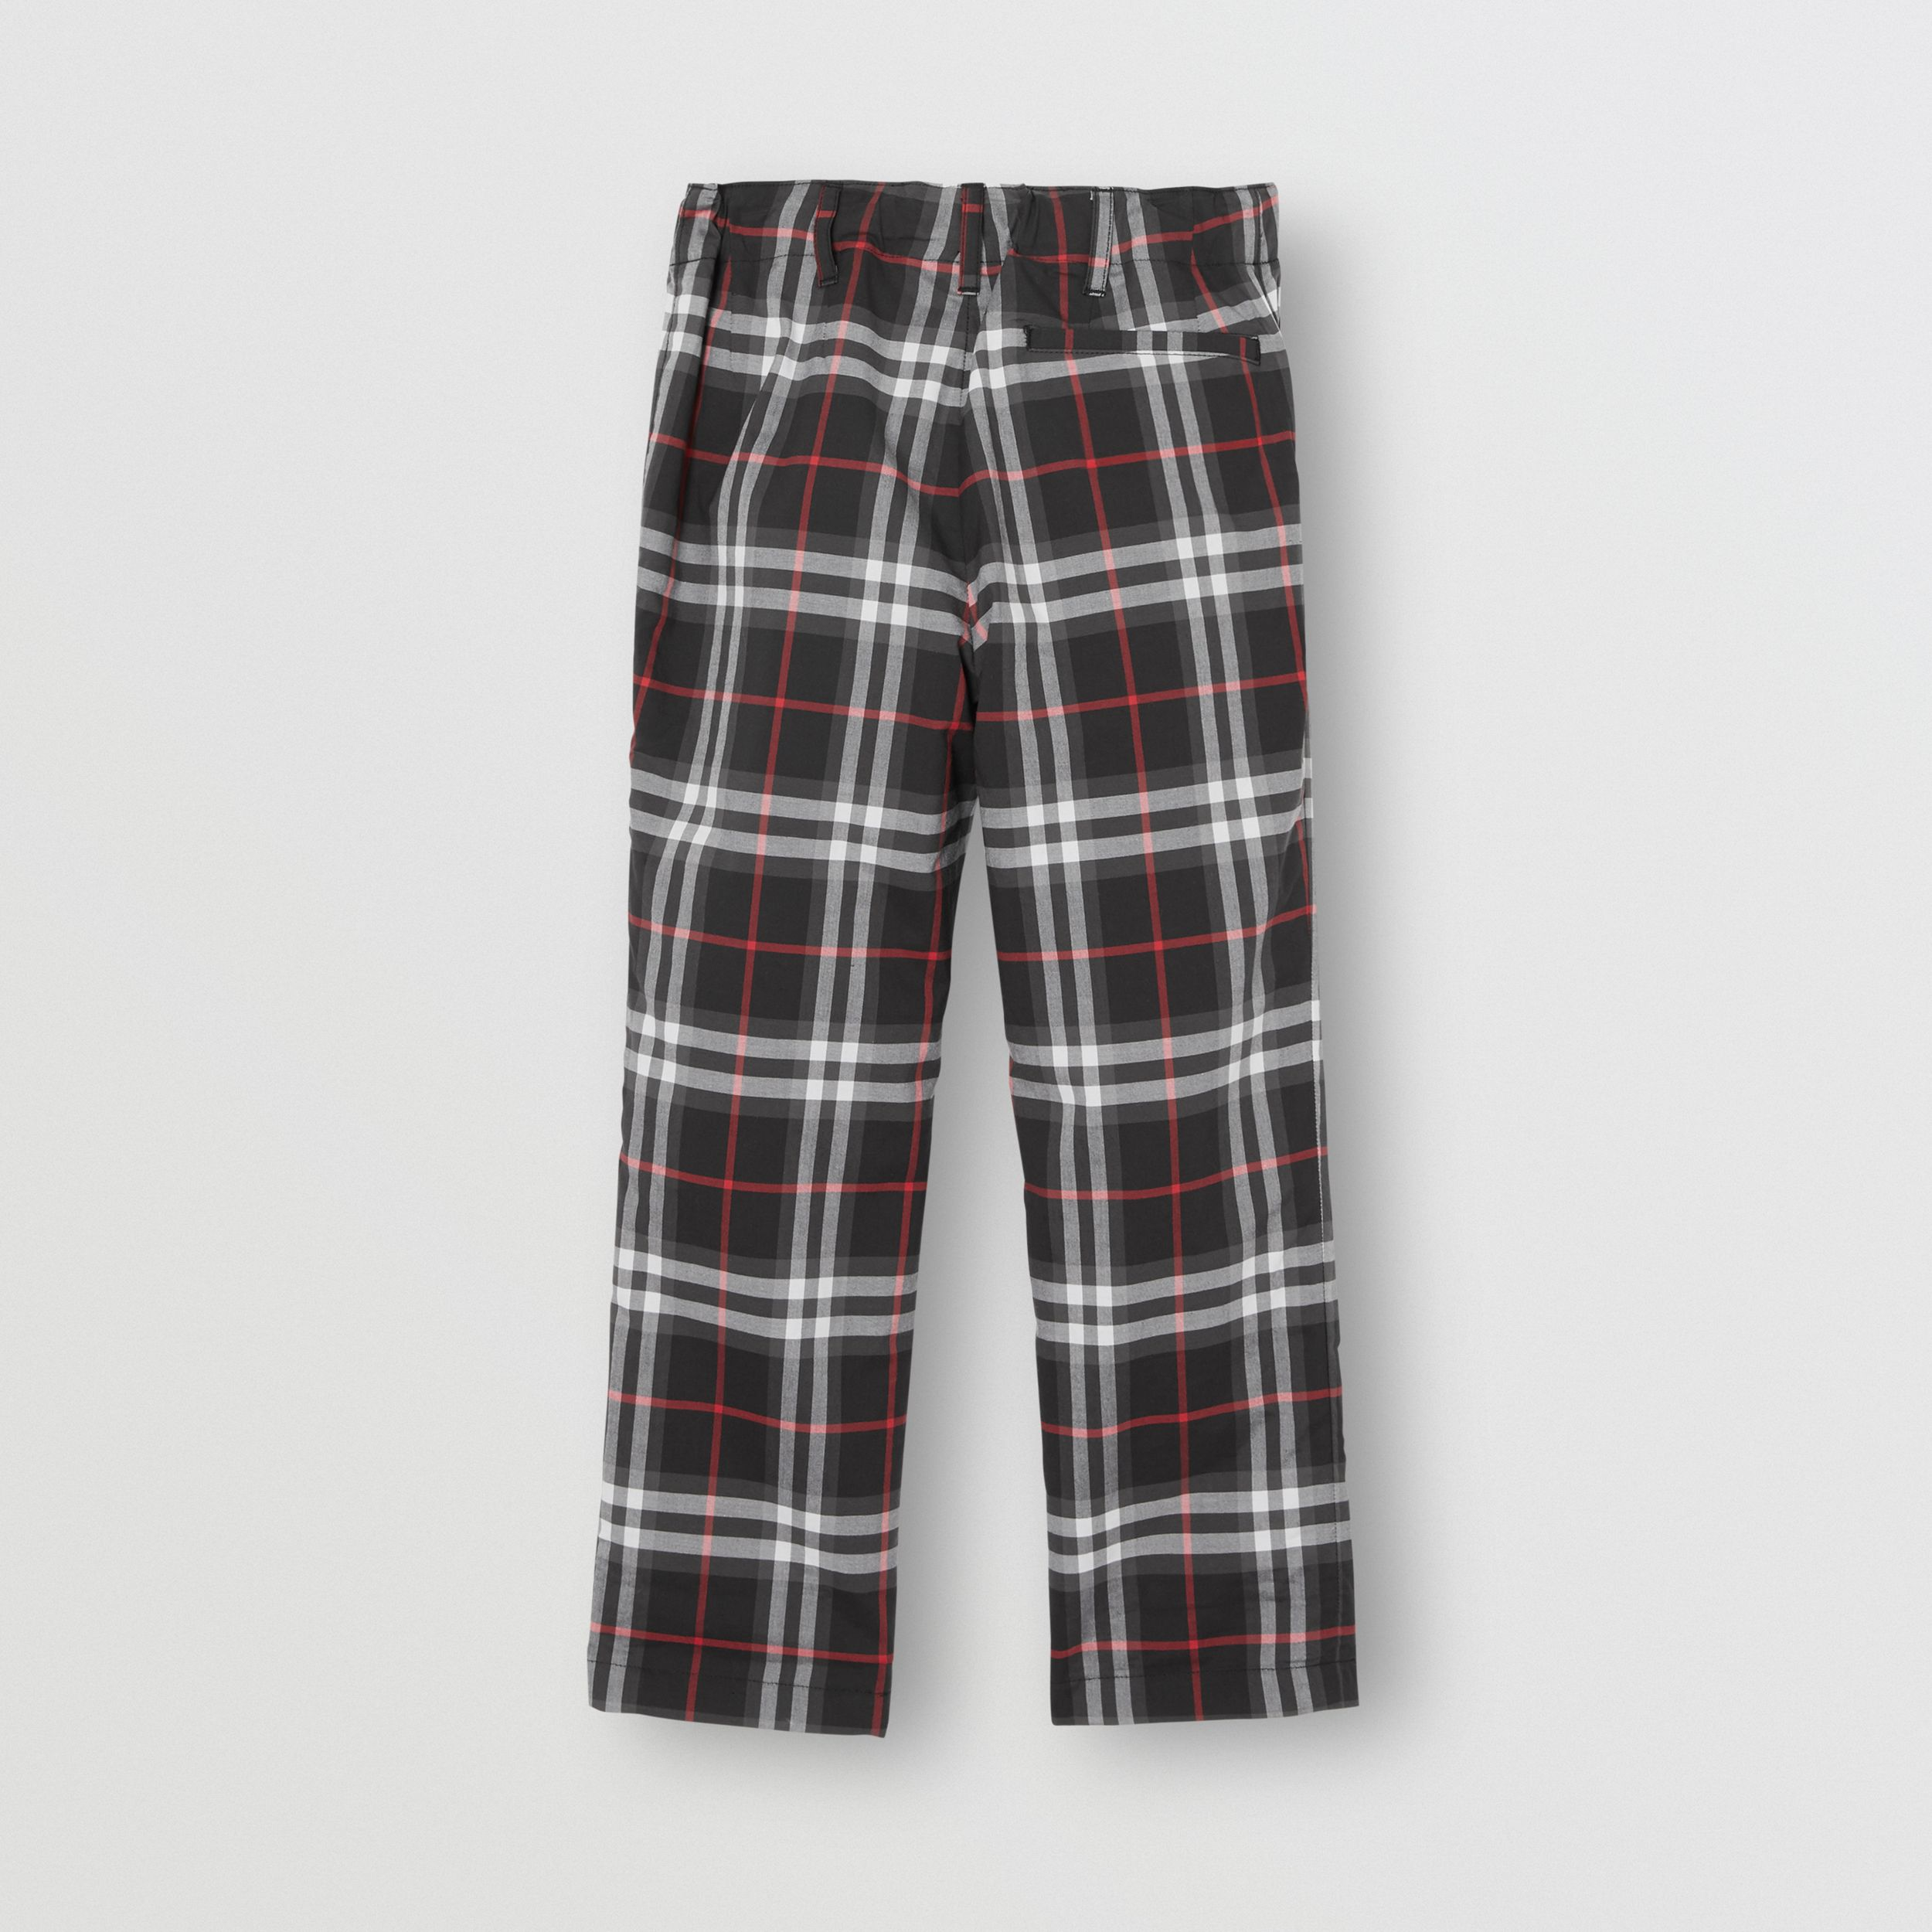 Vintage Check Cotton Tailored Trousers in Black | Burberry - 4